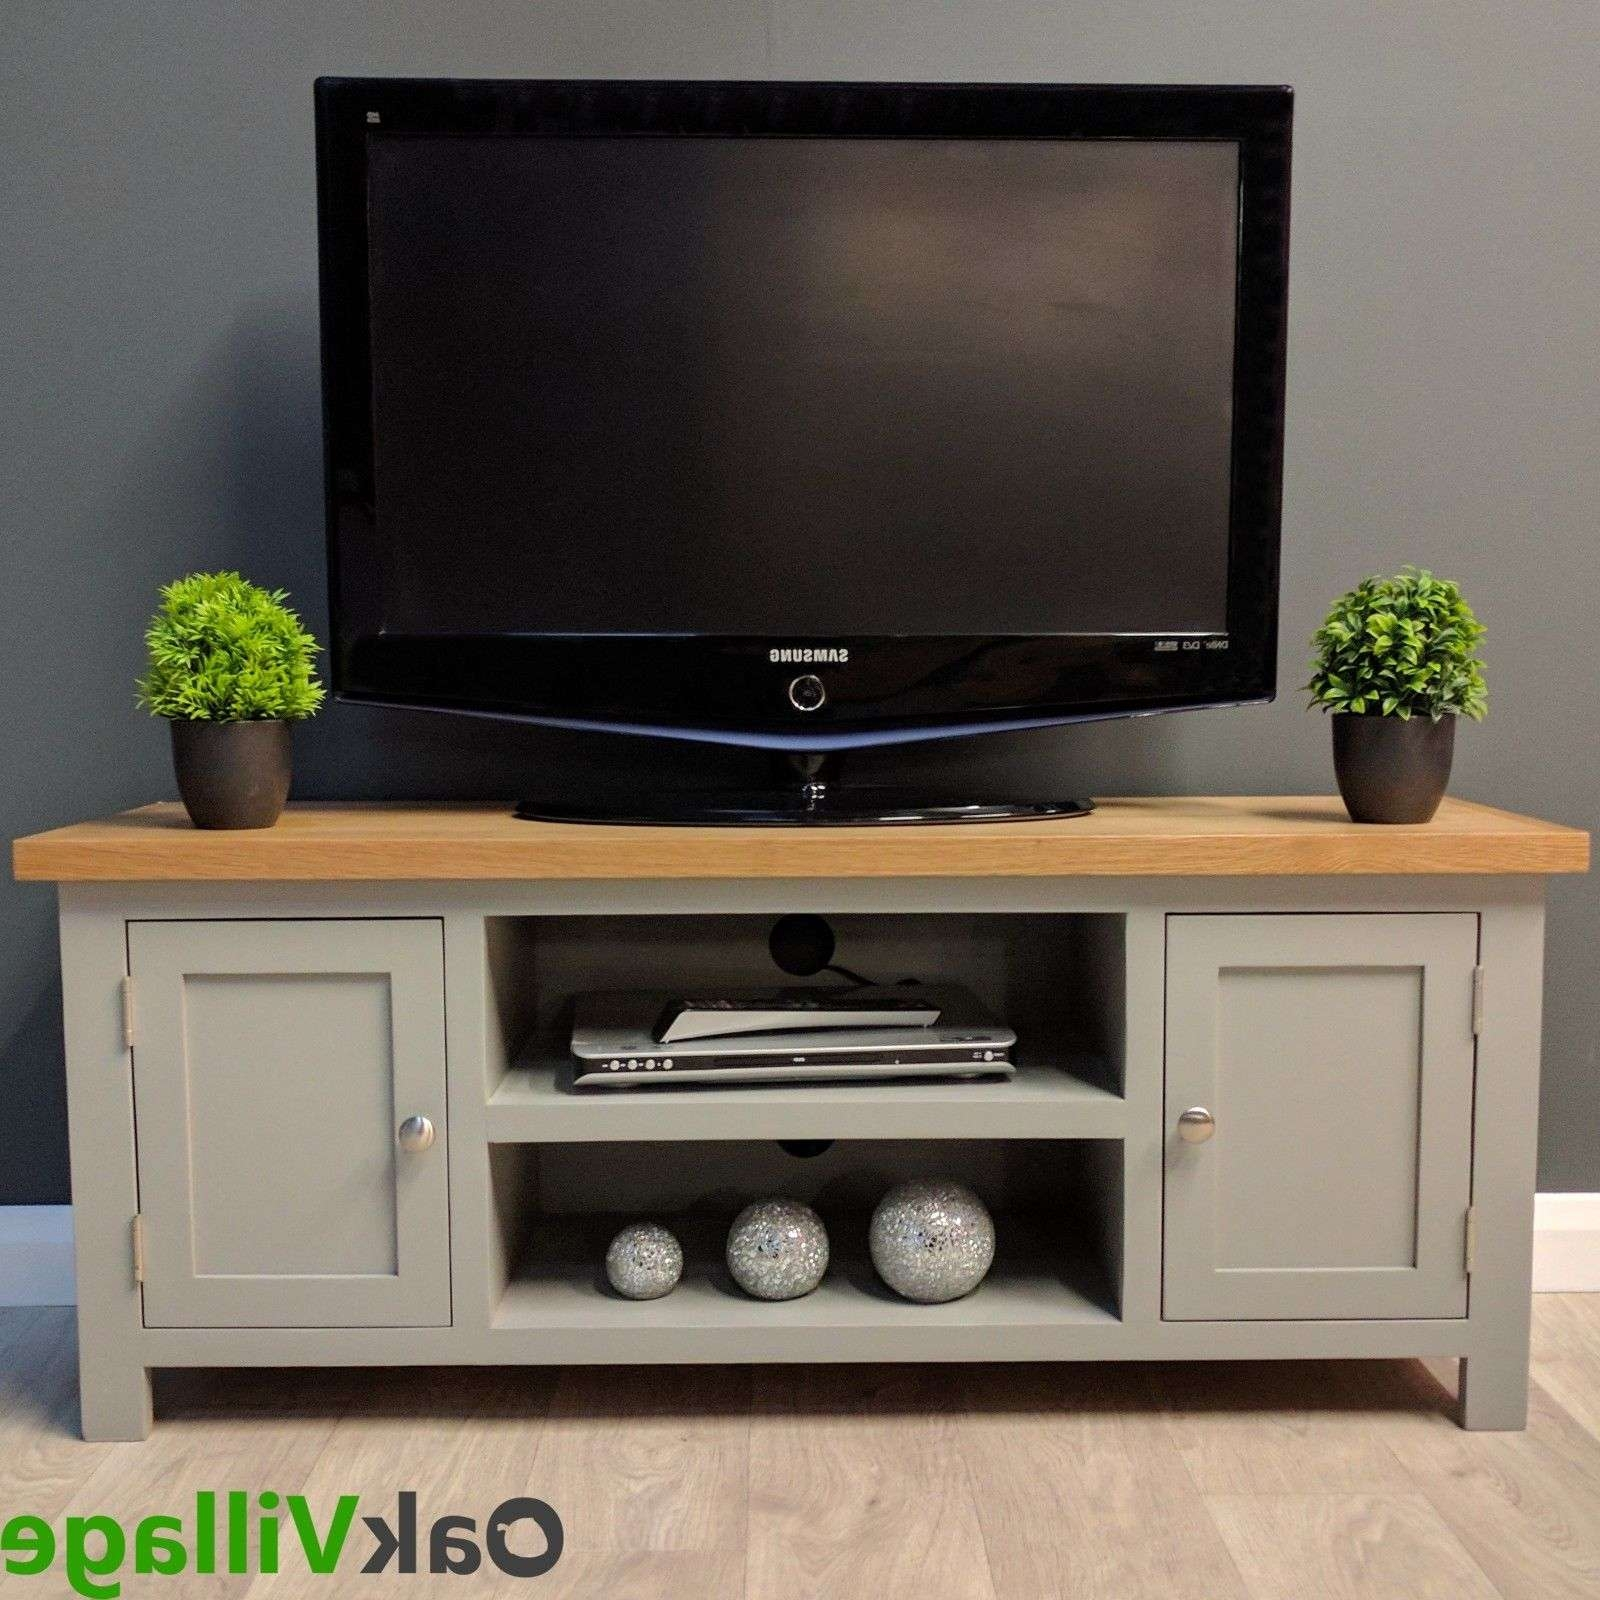 Oak Tv Stands | Ebay Pertaining To Cheap Oak Tv Stands (View 7 of 15)